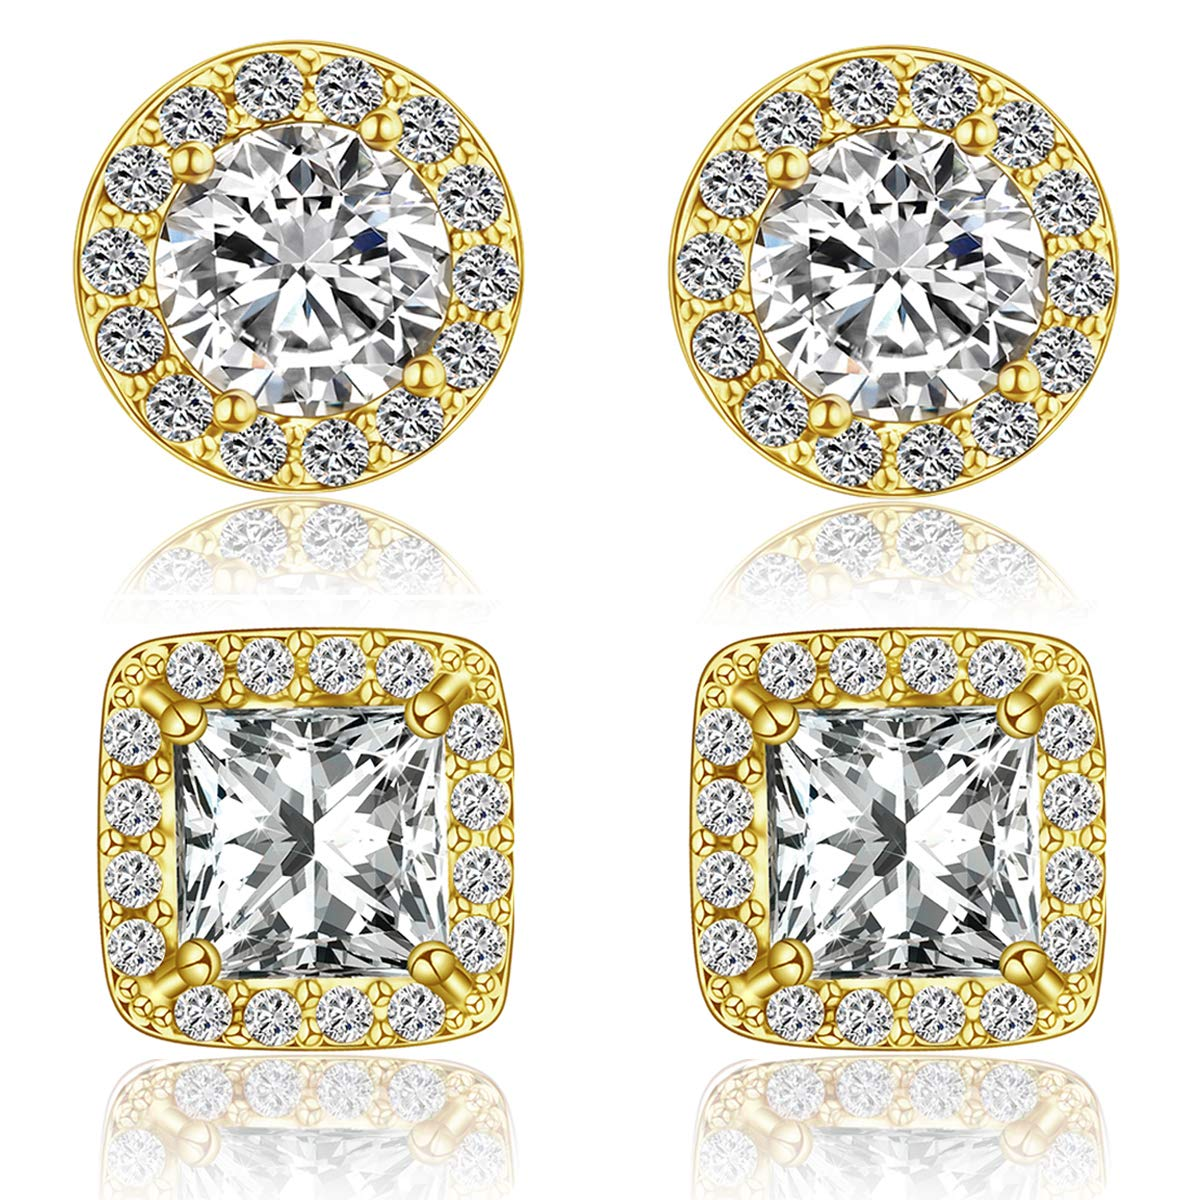 Quinlivan Duo 2 Pairs Premium Halo Stud Earrings, Round Princess Cut Cubic Zirconia Earrings Sets Lightweight for Women, Girls Girls (gold)